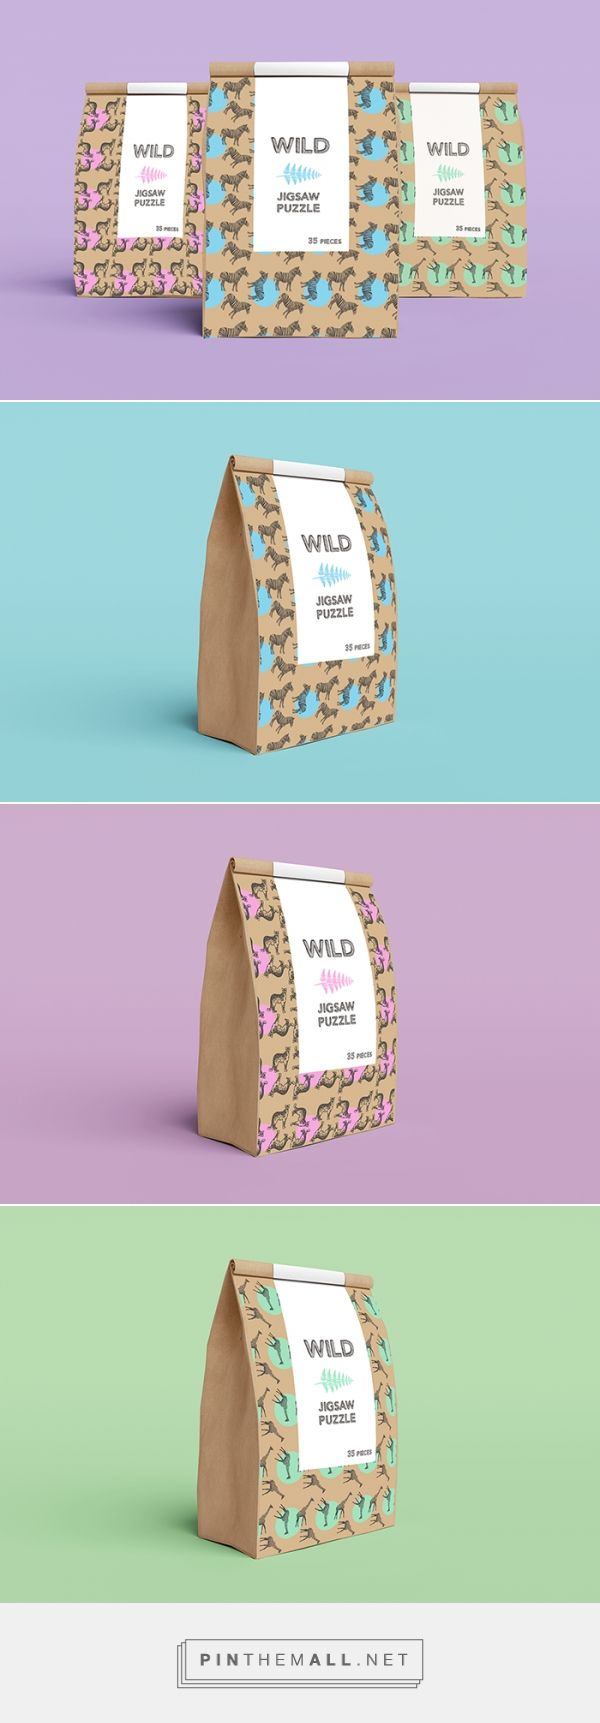 Wild Jigsaw Puzzle by Lizzie Jackson. Source: Daily Package Design Inspiration. Pin curated by #SFields99 #packaging #design